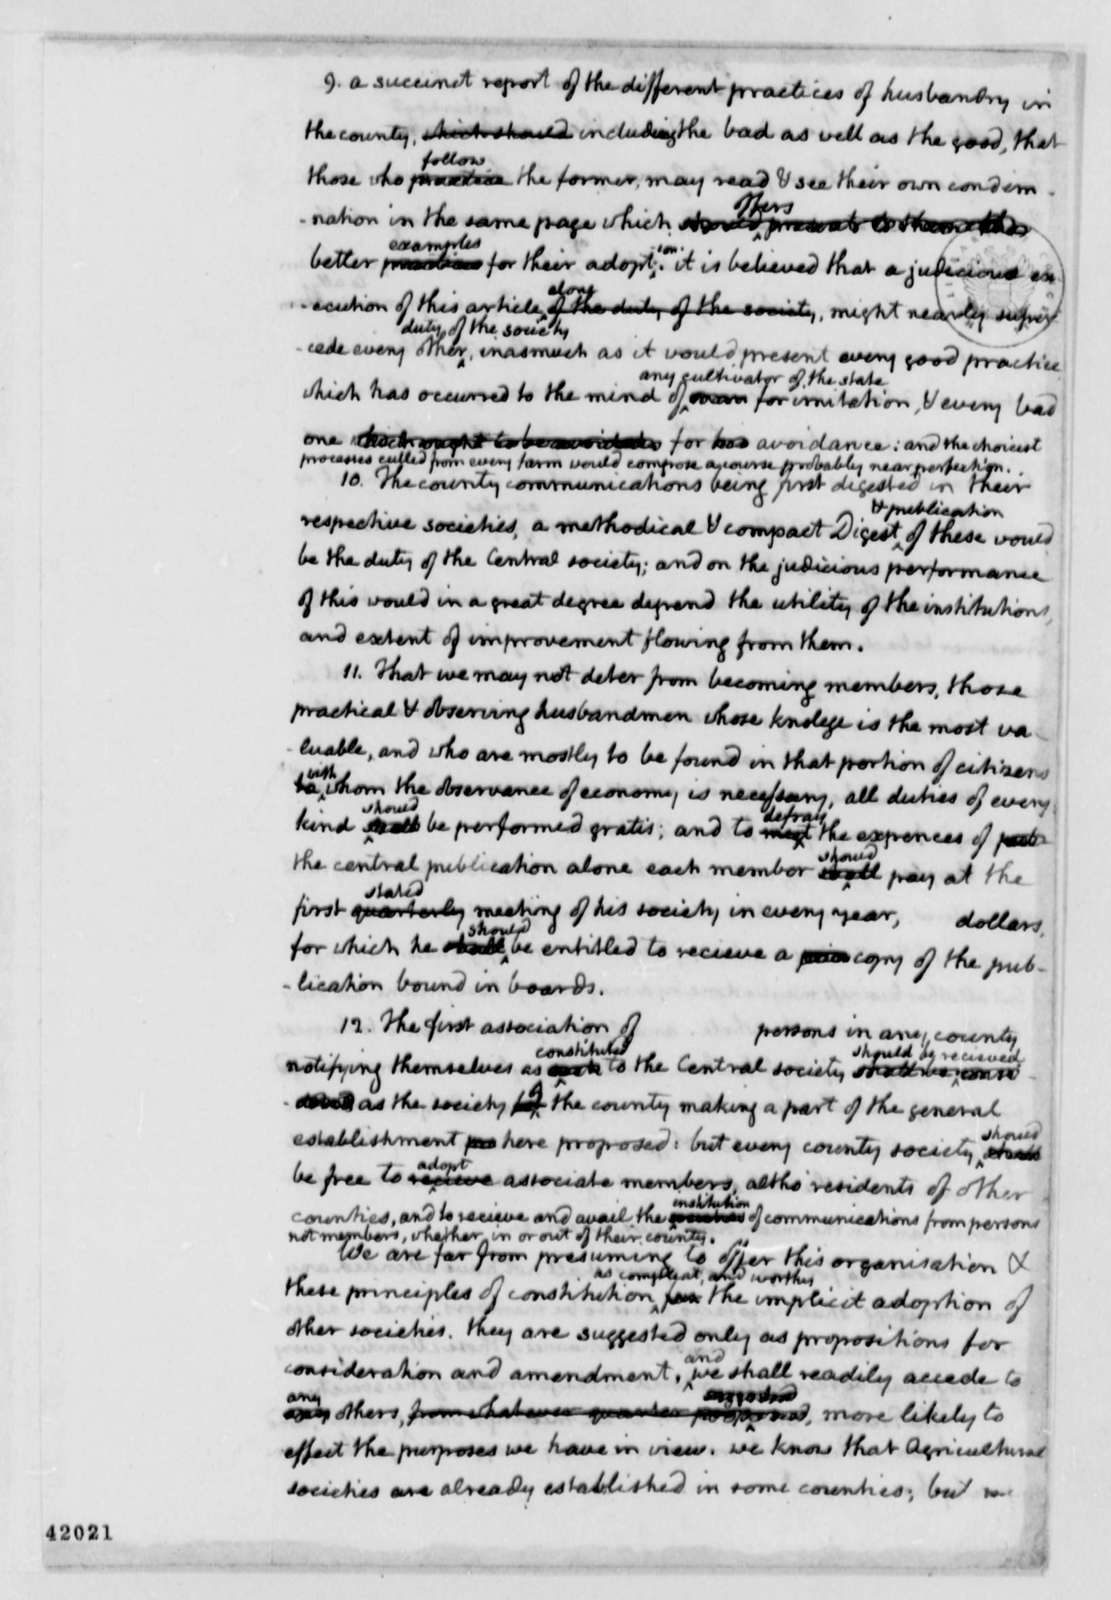 Thomas Jefferson, February 1, 1811, Draft of Agricultural Society Constitution, Albemarle County, Virginia